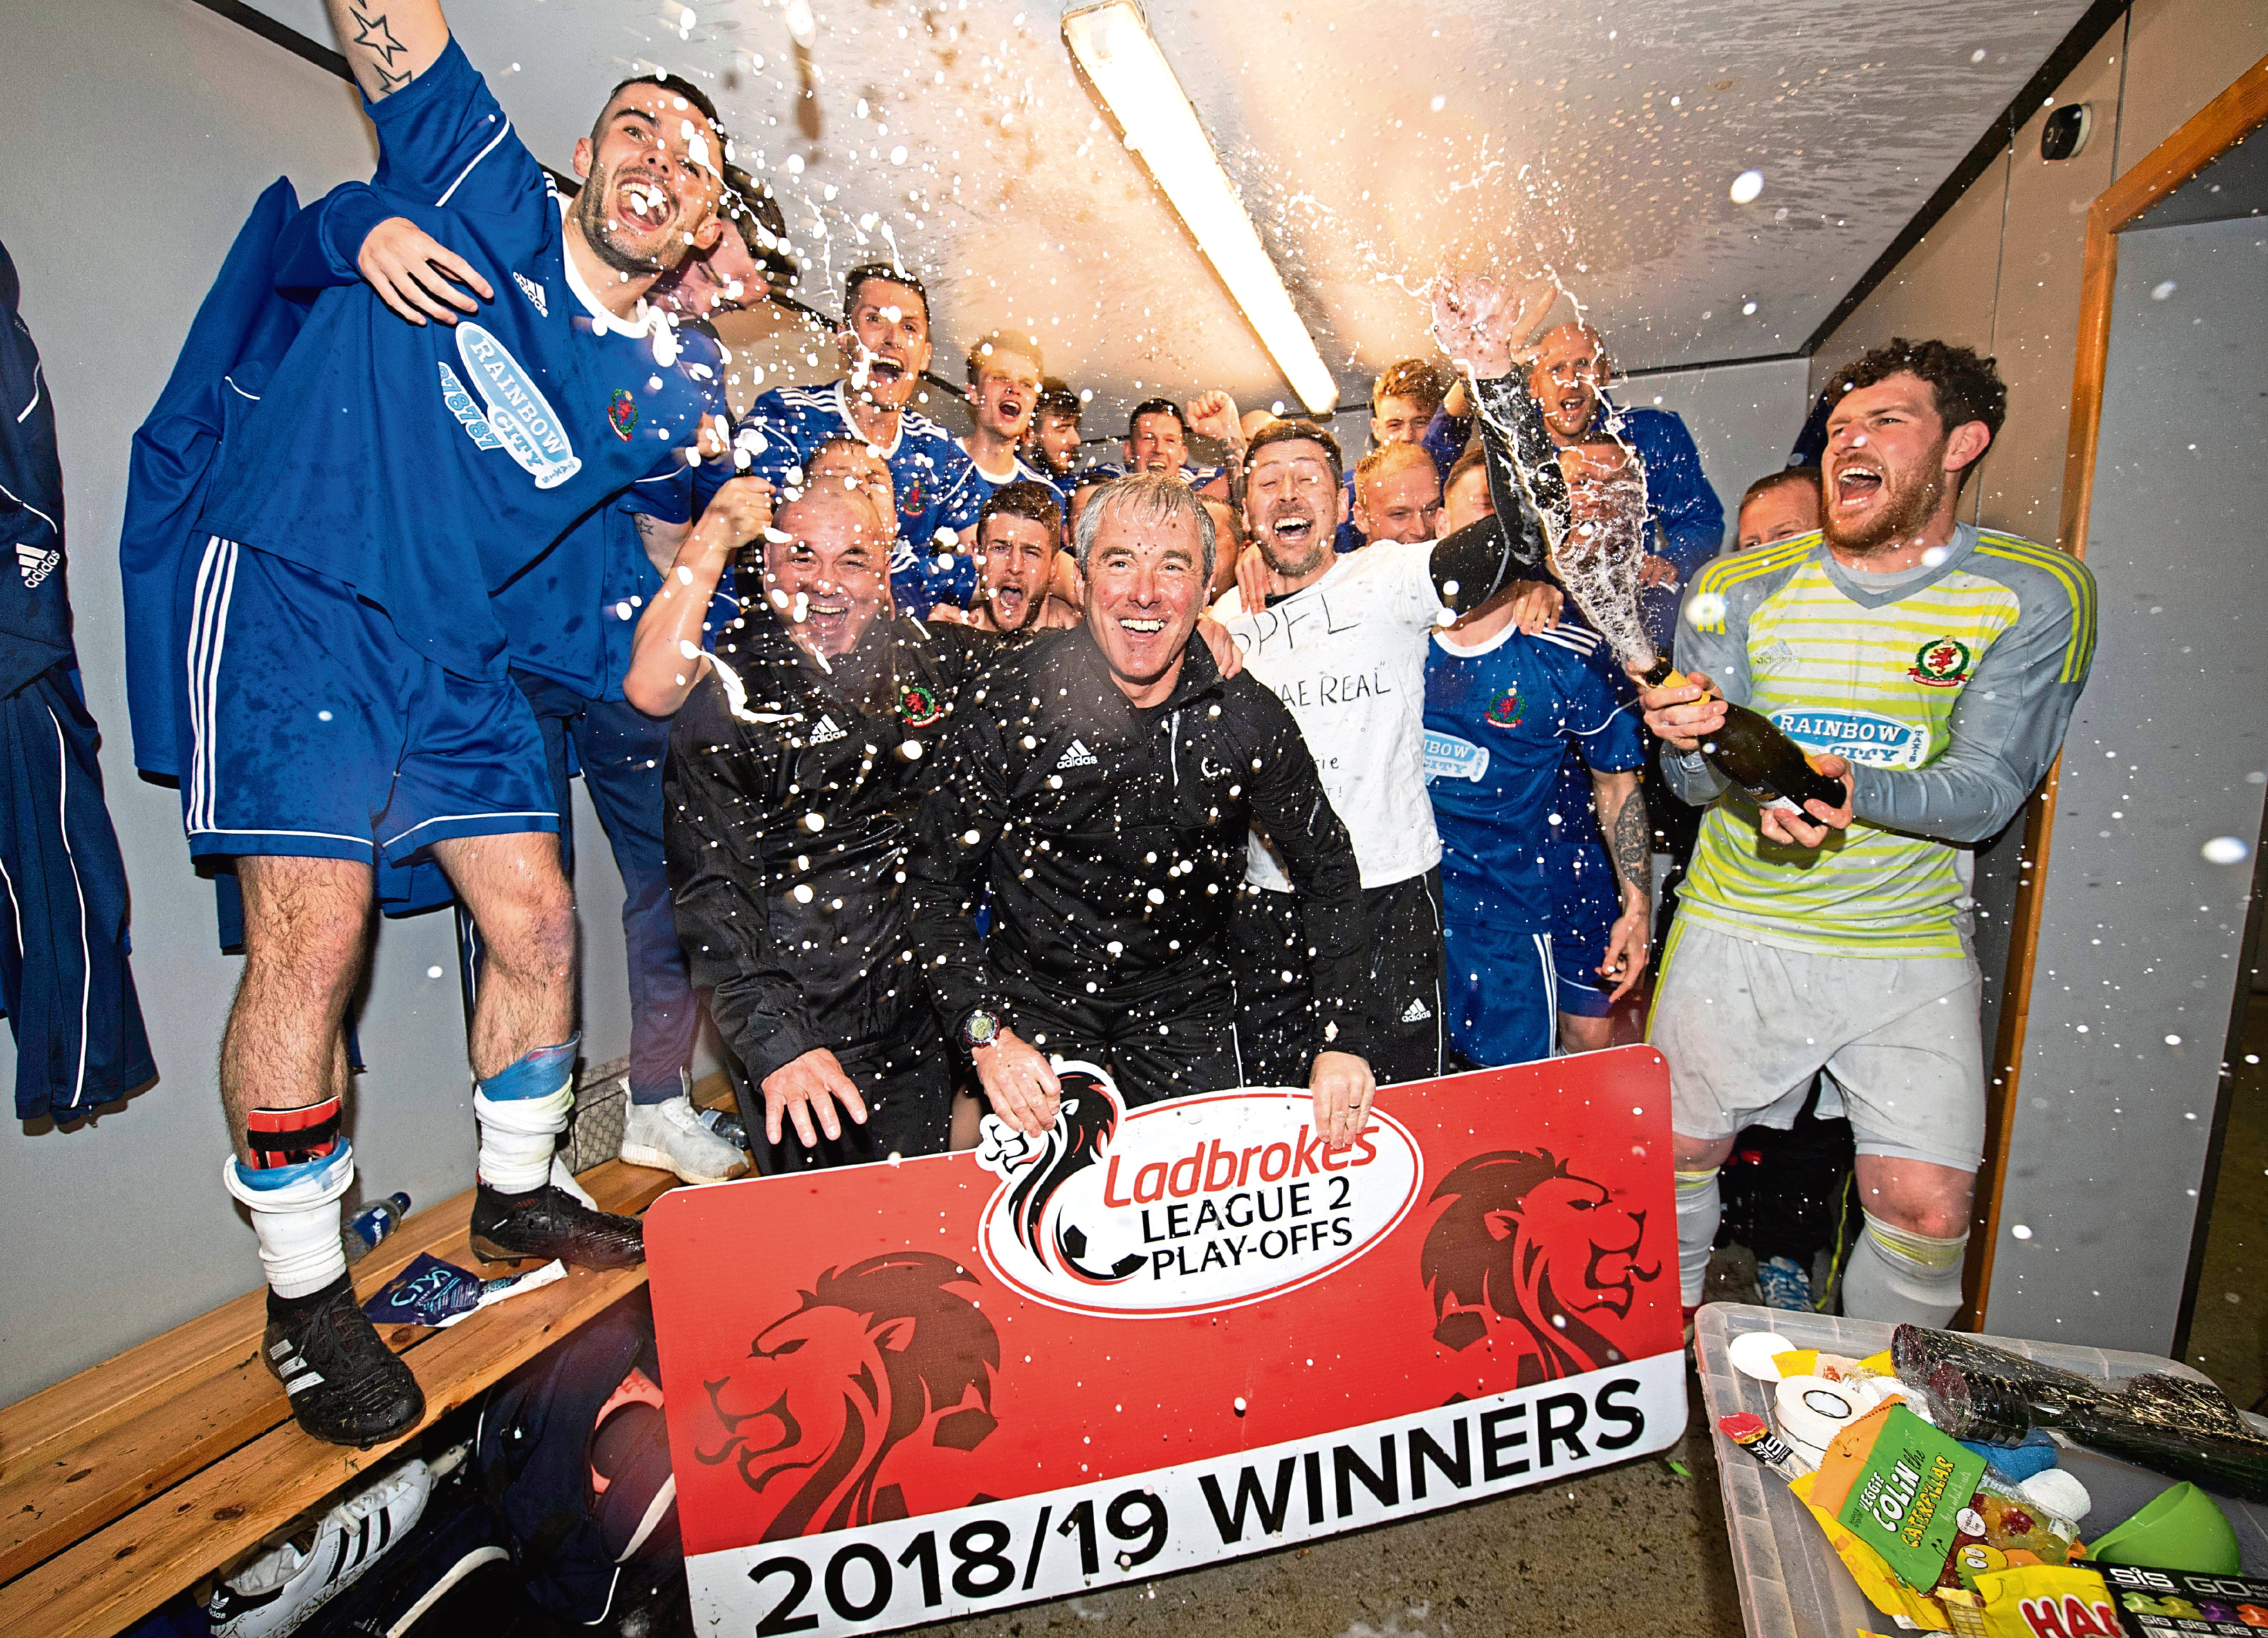 The Cove Rangers squad celebrate winning the Ladbrokes League Two Play-Offs